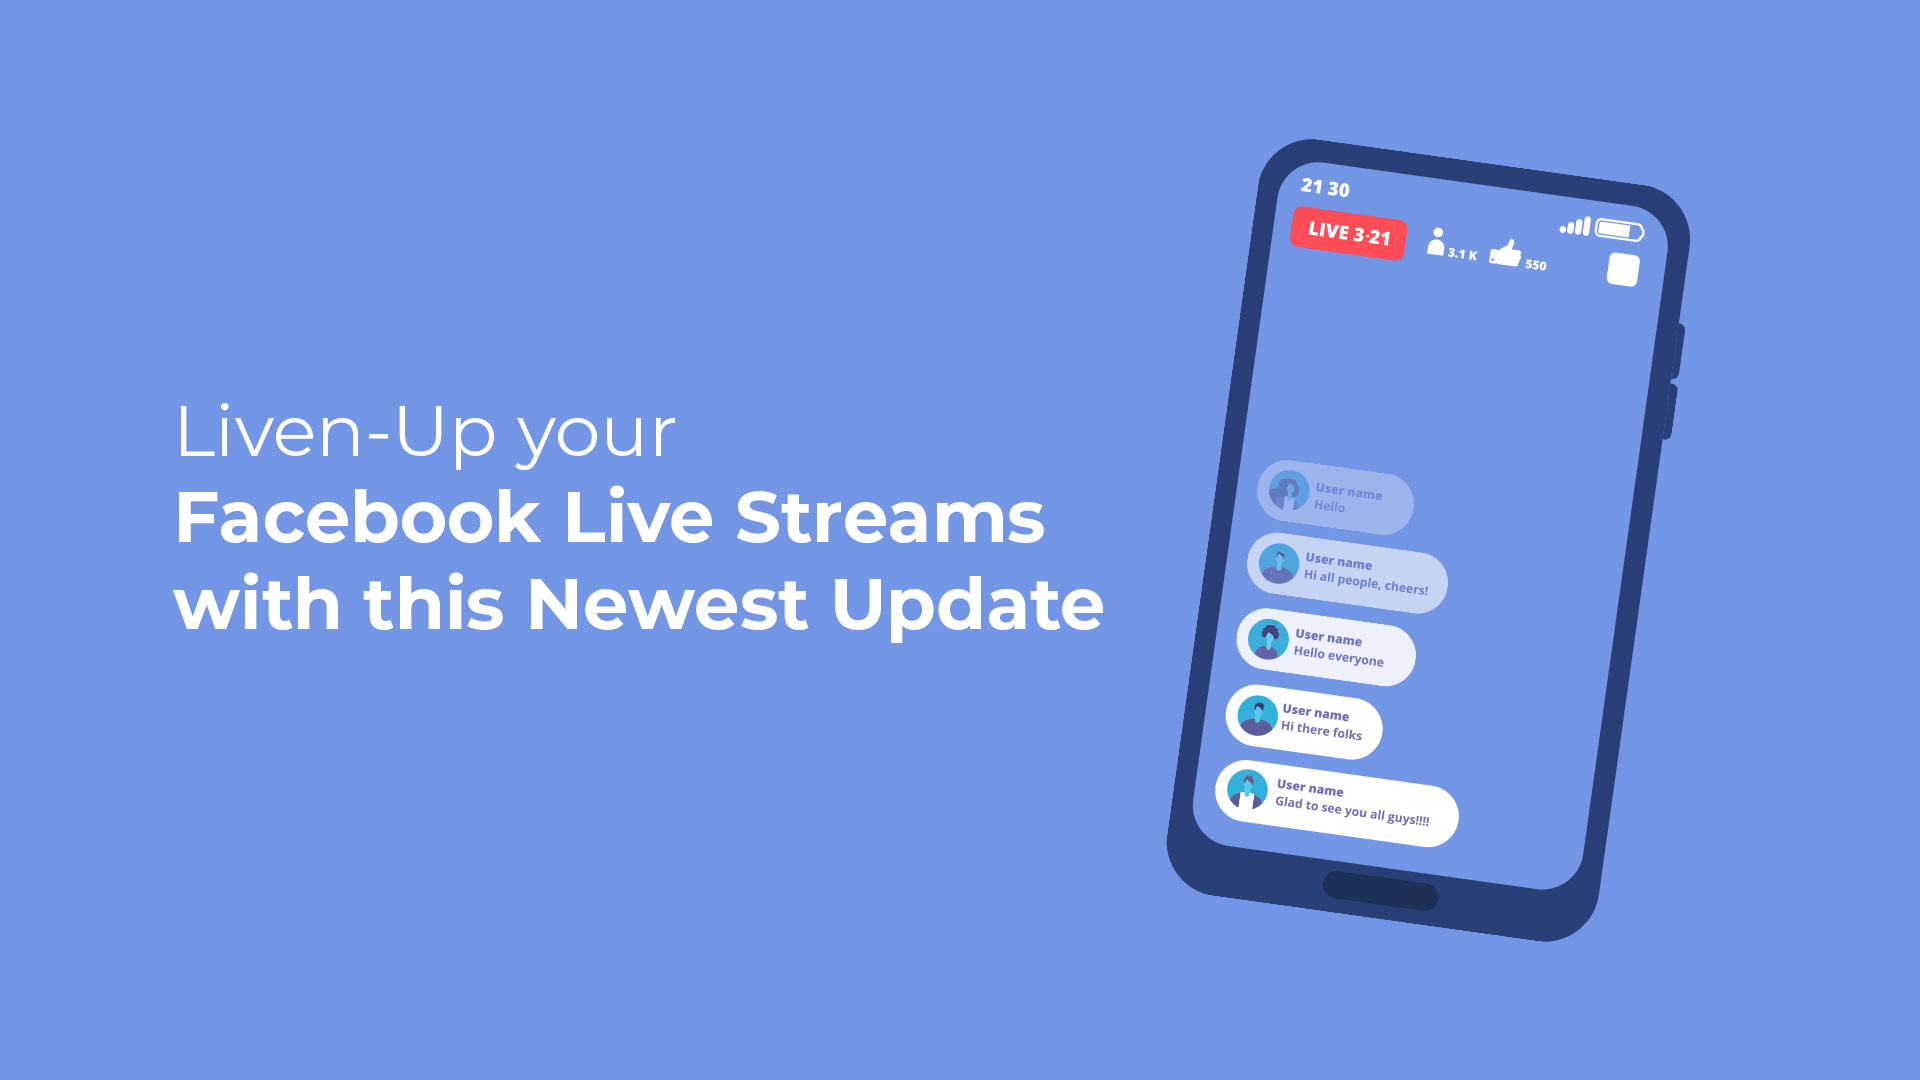 Liven-Up your Facebook Live Streams with this Newest Update